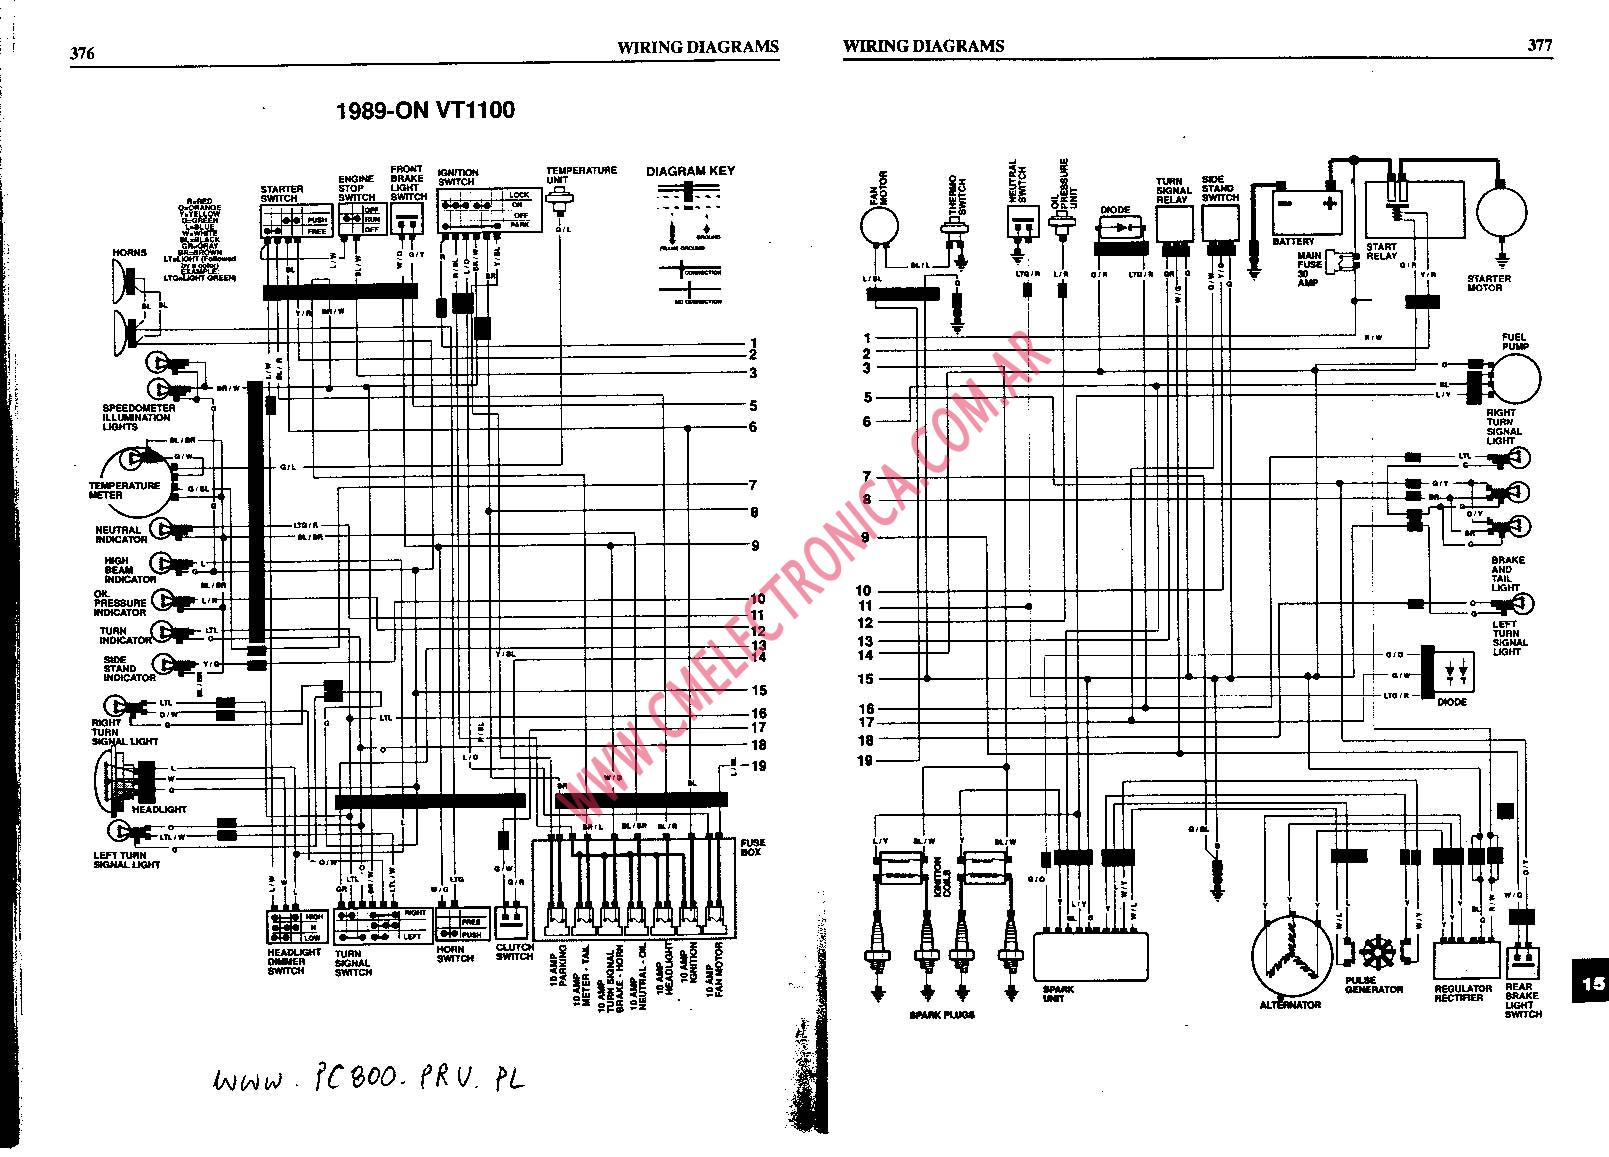 1993 Integra Fuse Box Manual Of Wiring Diagram 2004 Honda Accord Ke Light Diagrams U2022 Acura